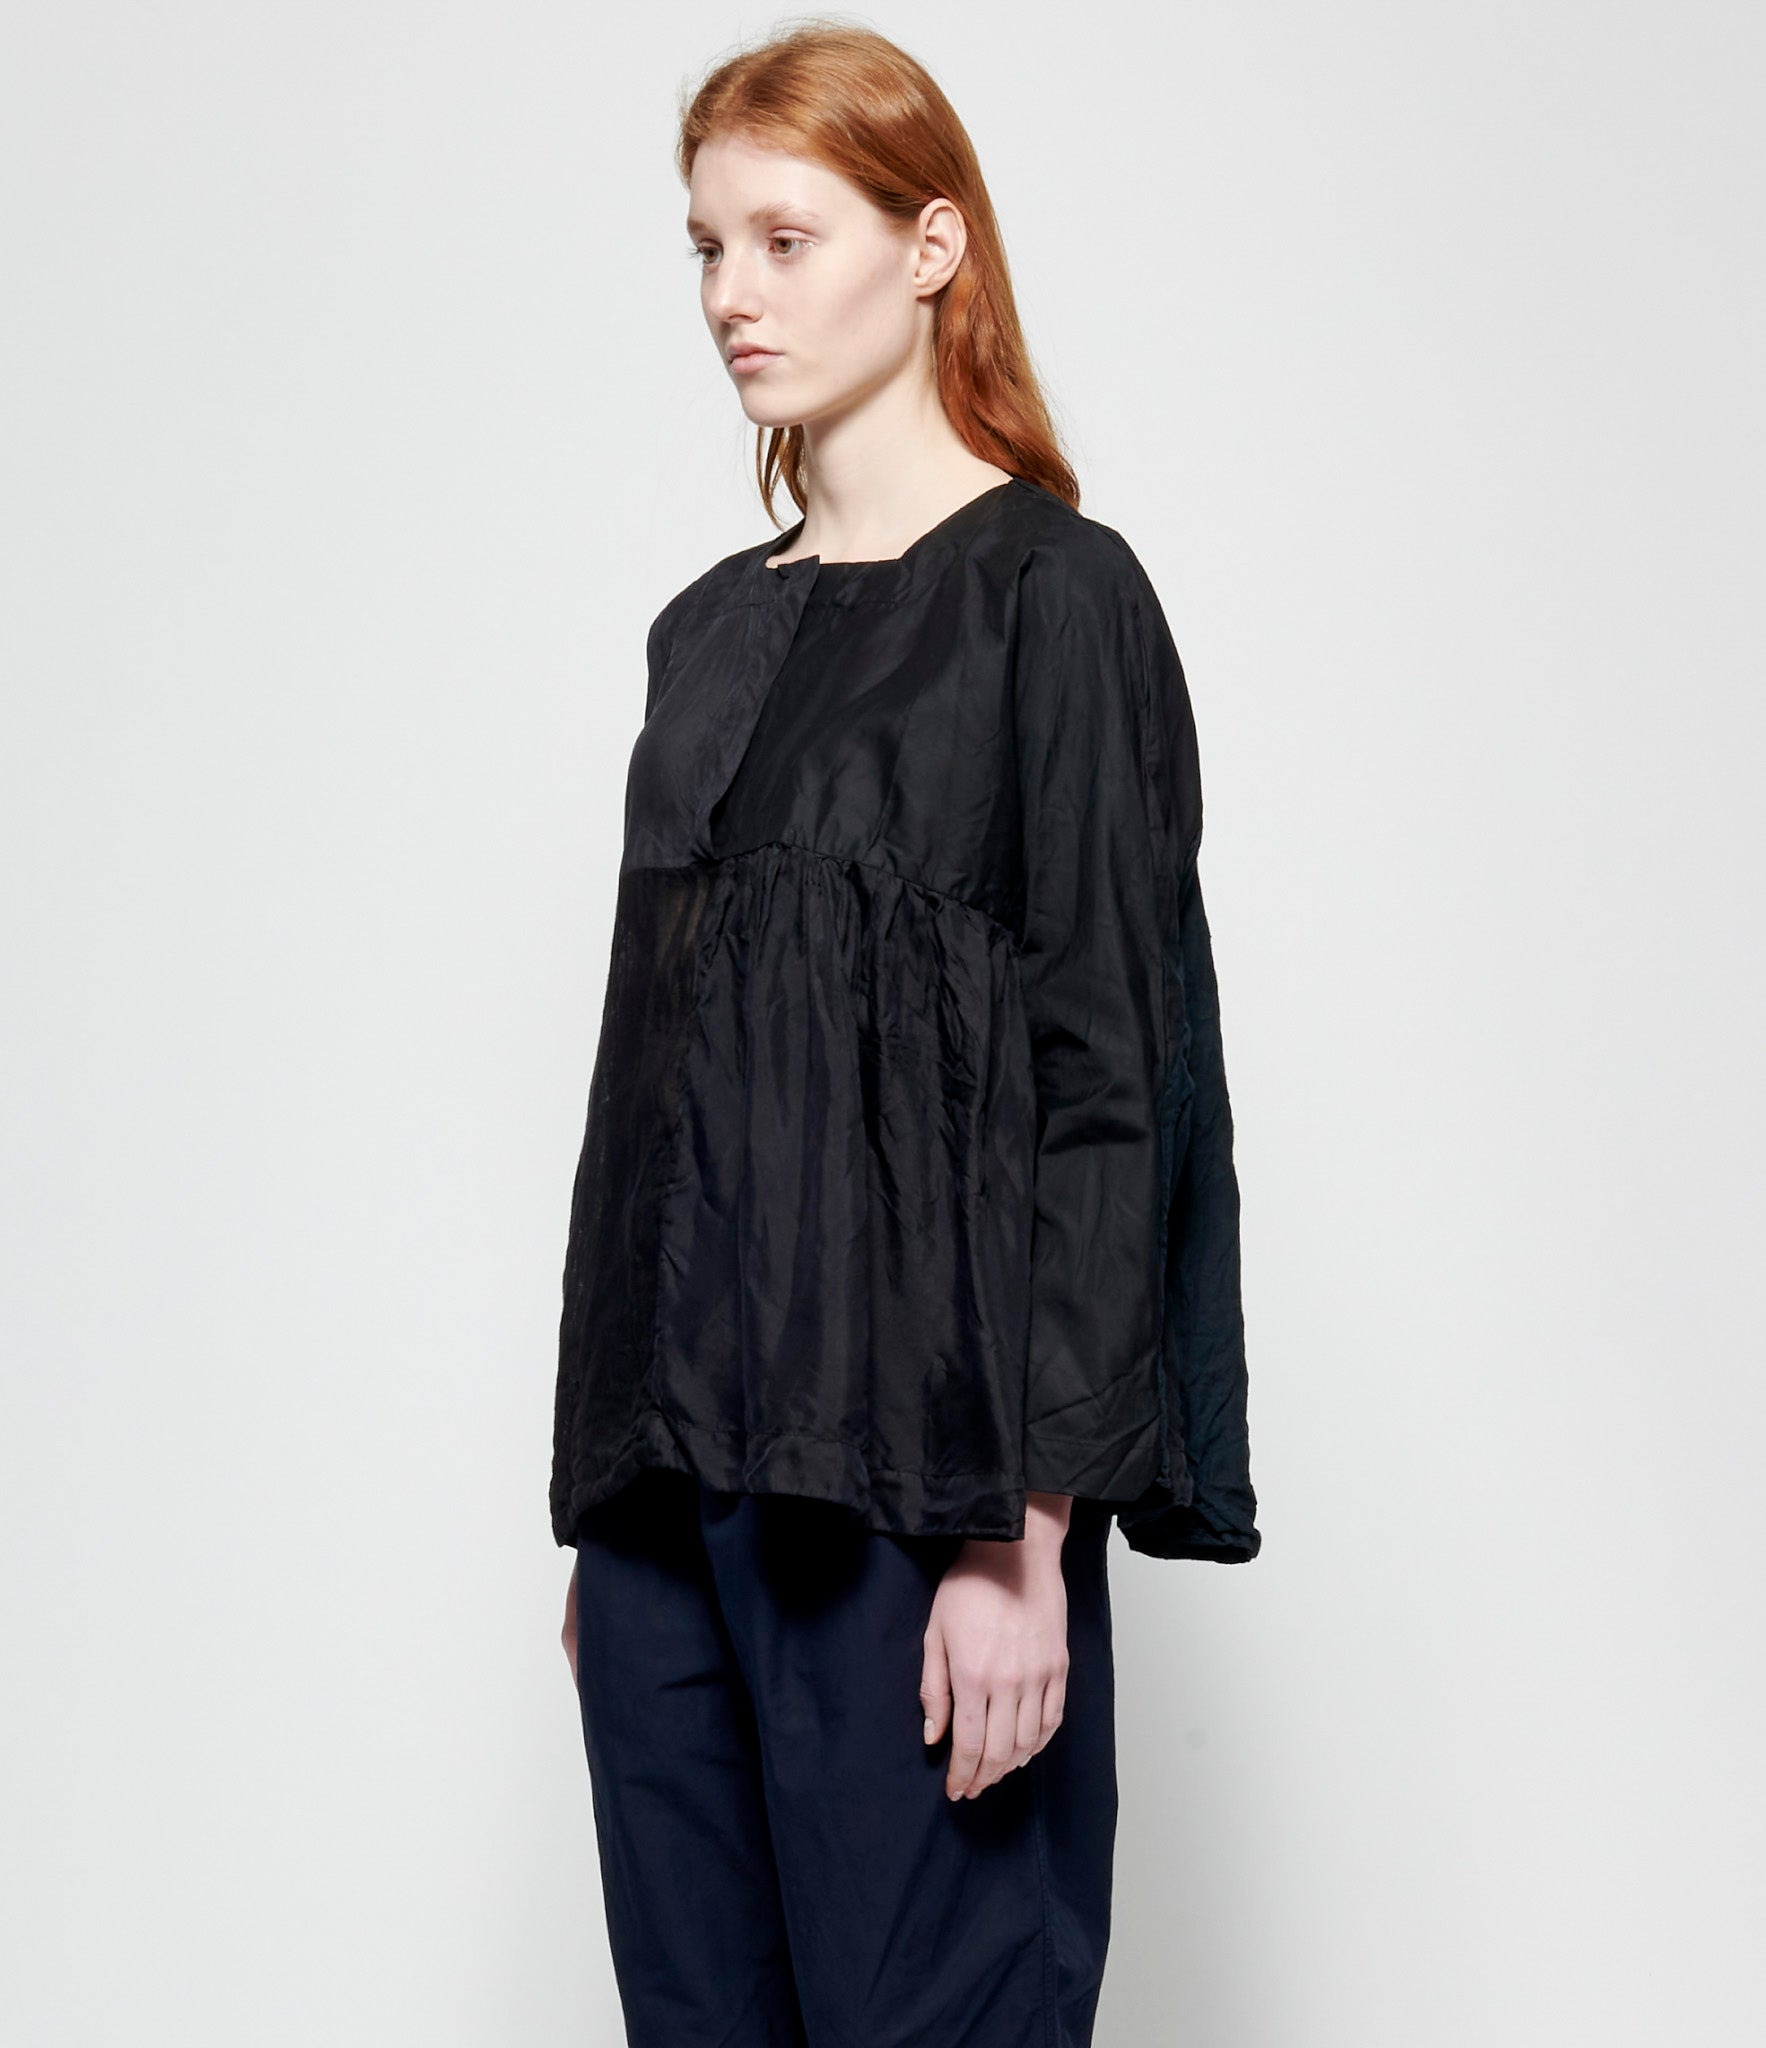 Daniela Gregis Ricetta Patchwork Washed Shirt